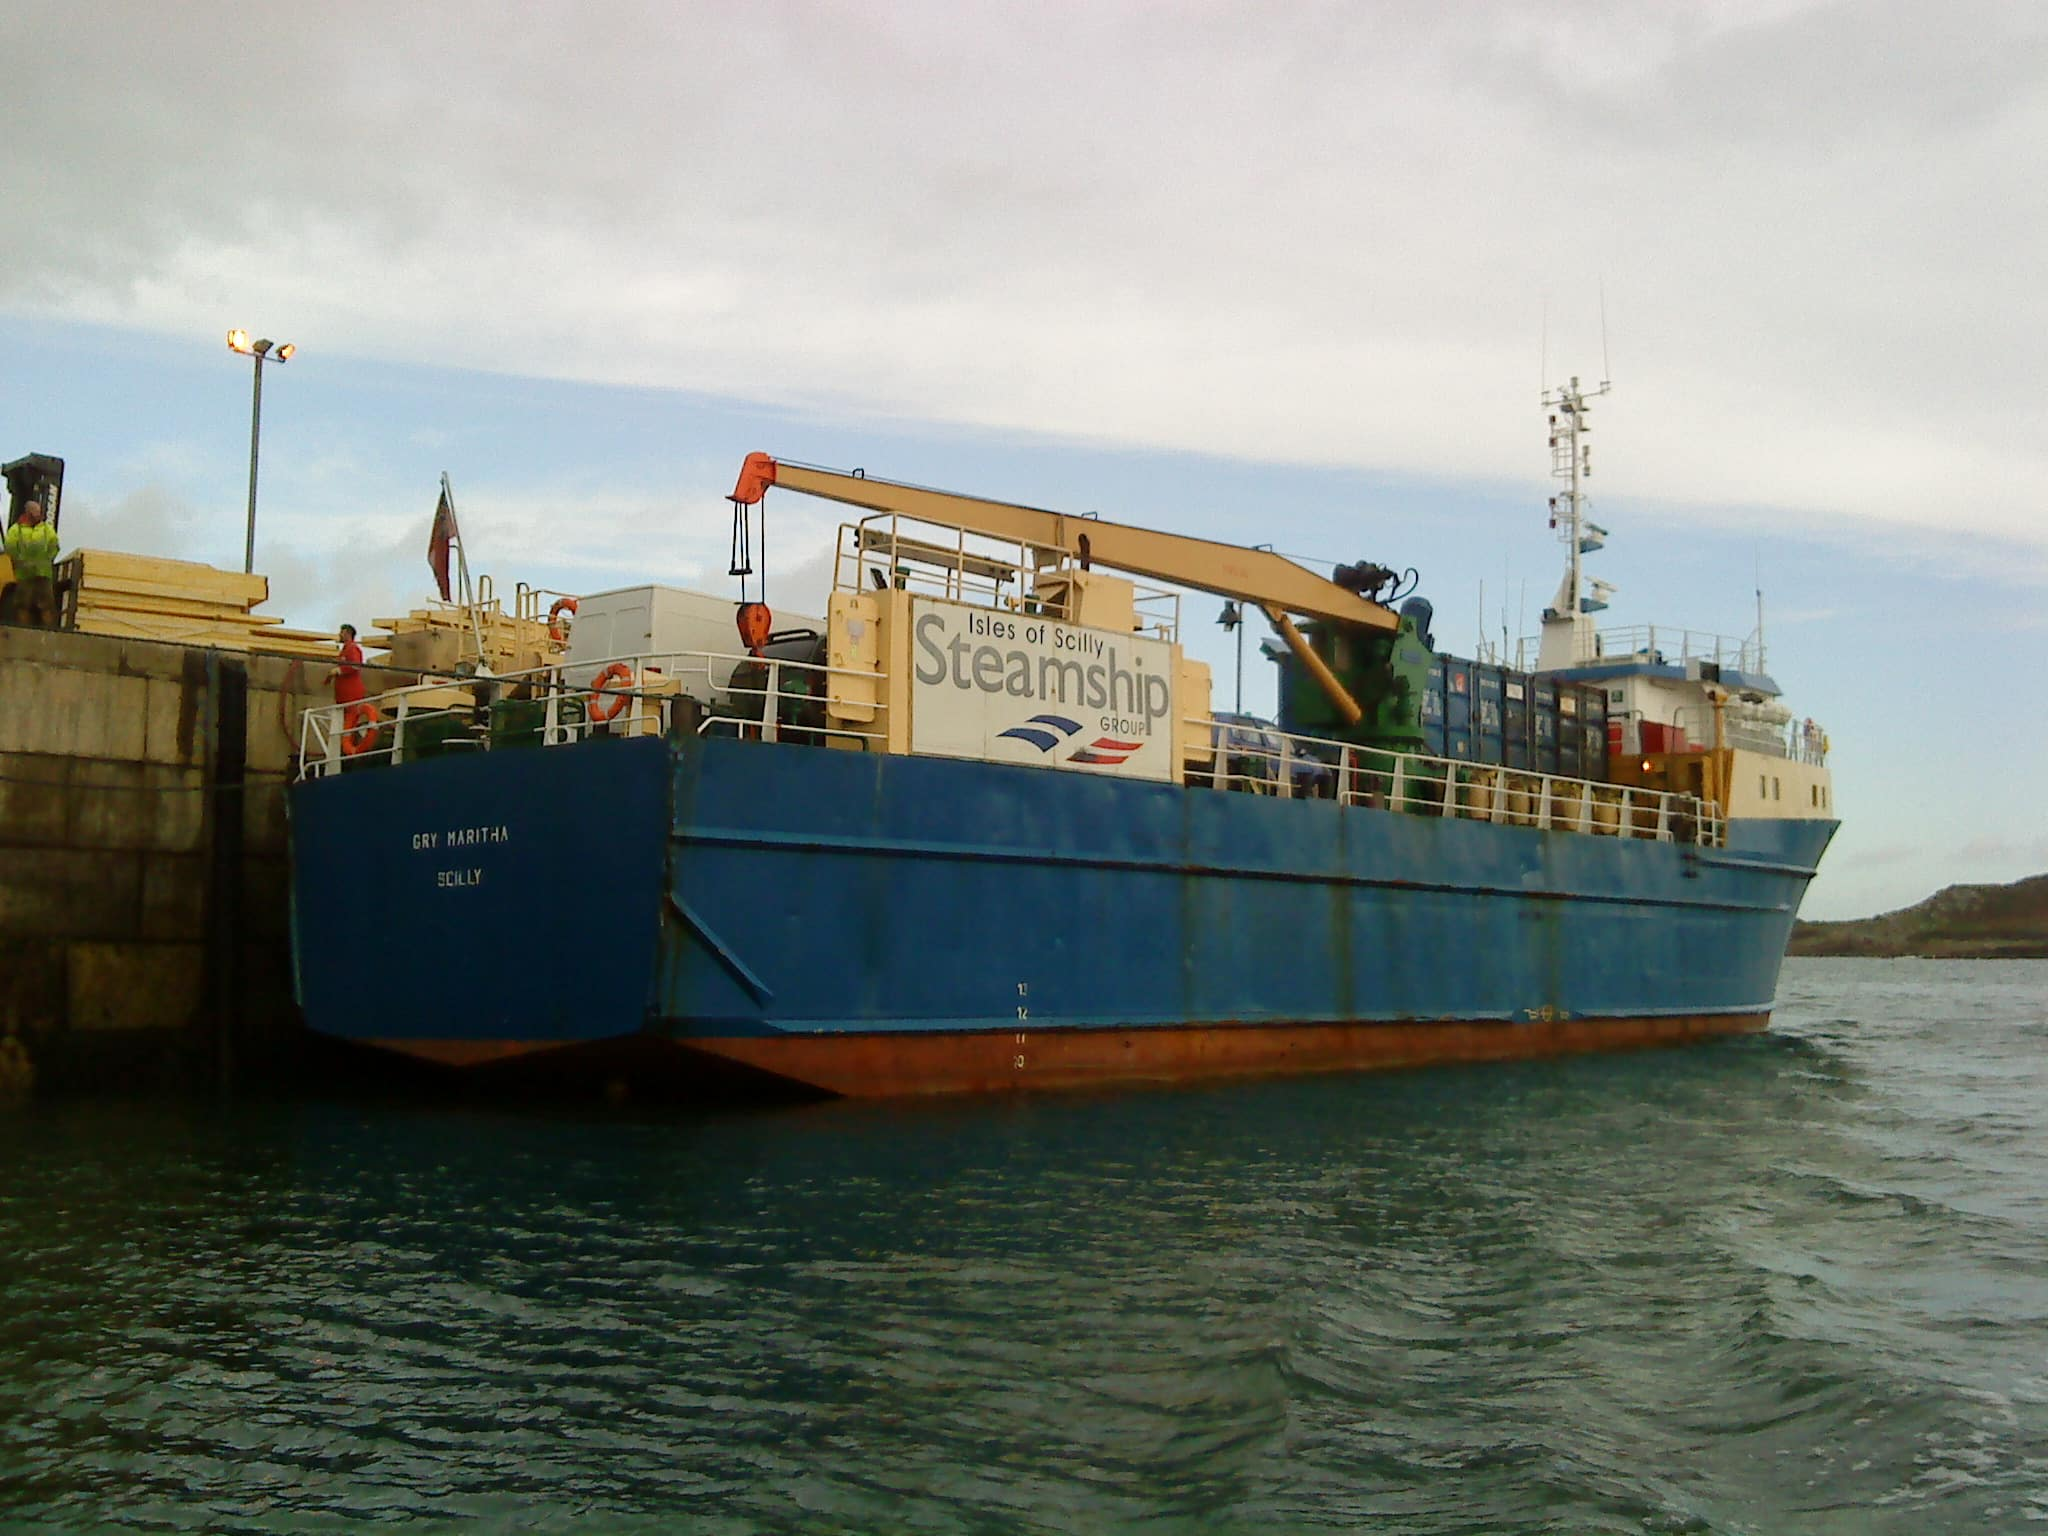 Gry Maritha unloading early in the morning